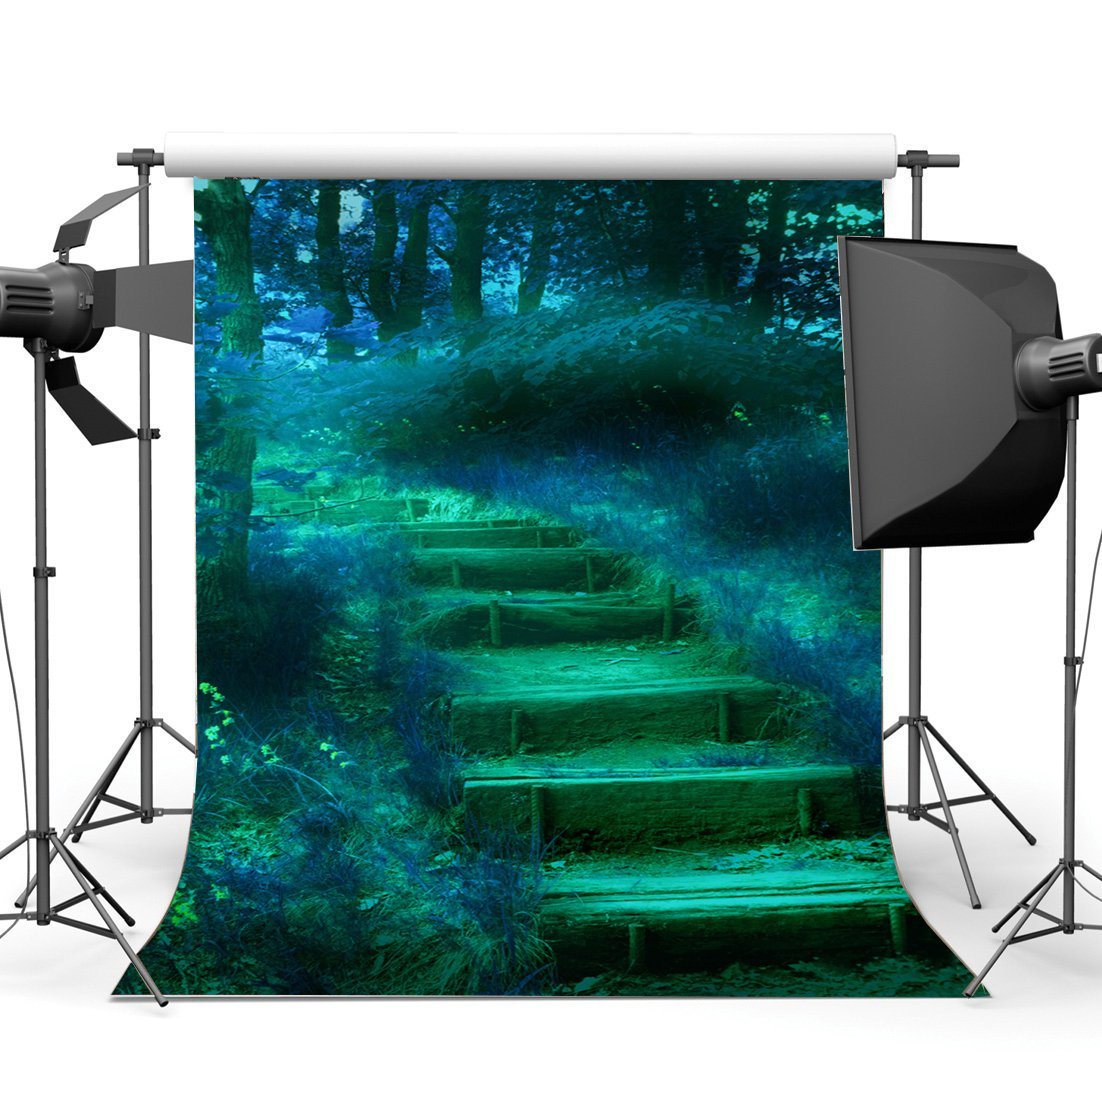 Photography Backdrop Jungle Forest Dreamy World Fairy Tale Steps Grass Field Fantasy Landscape Backdrops-in Photo Studio Accessories from Consumer Electronics